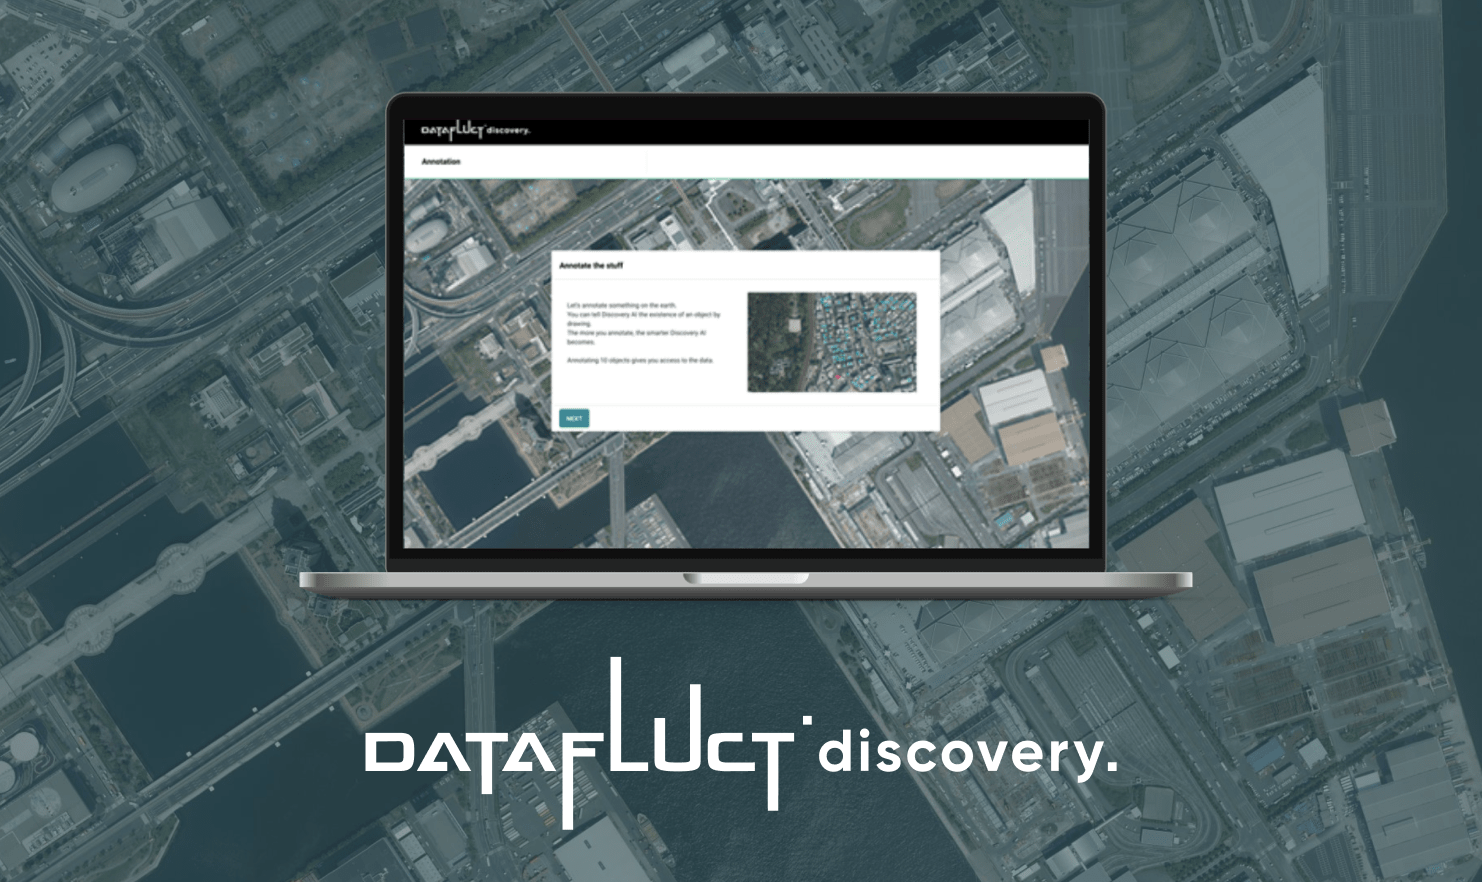 DATAFLUCT discovery.